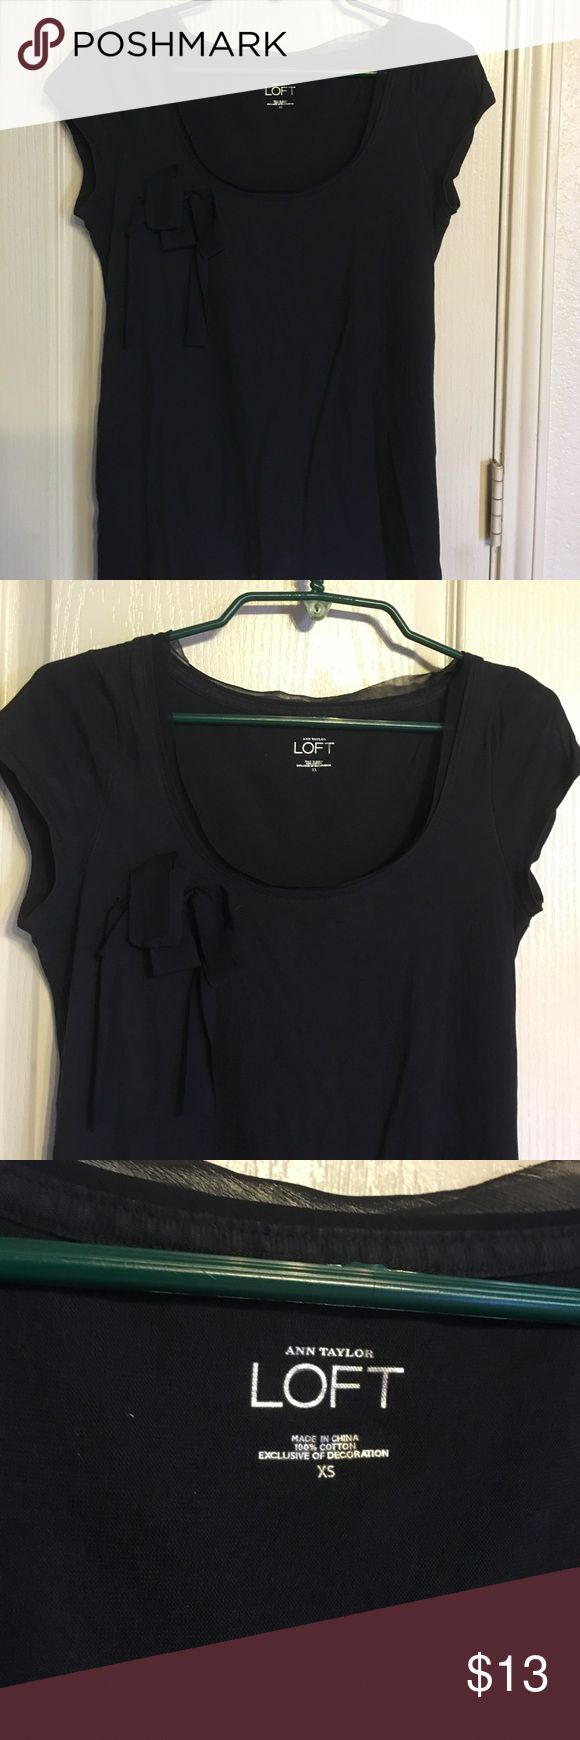 Ann Taylor Loft Top Navy short sleeve top size XS.... About 25 inches from shoulder to hem Ann Taylor Tops Tees - Short Sleeve